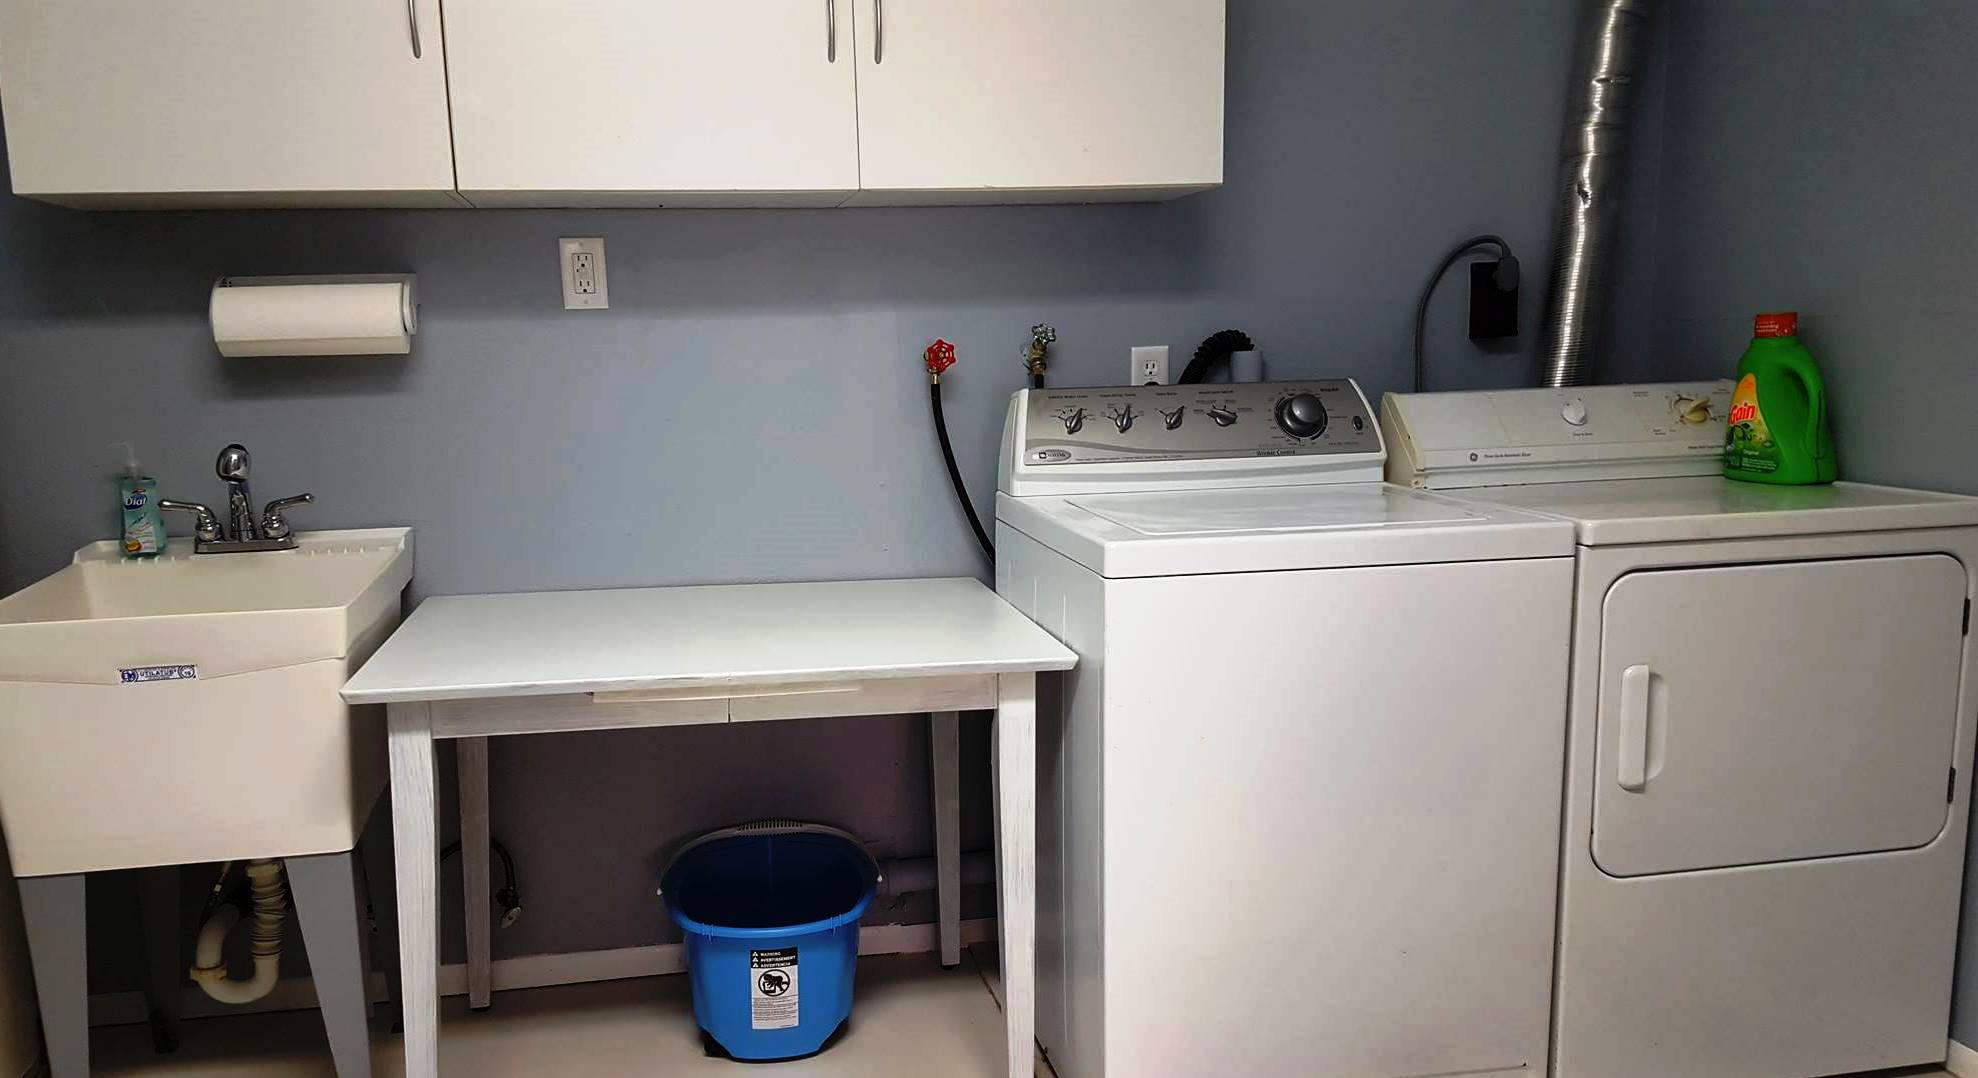 Laundry Room With Sink and Extra Refrigerator